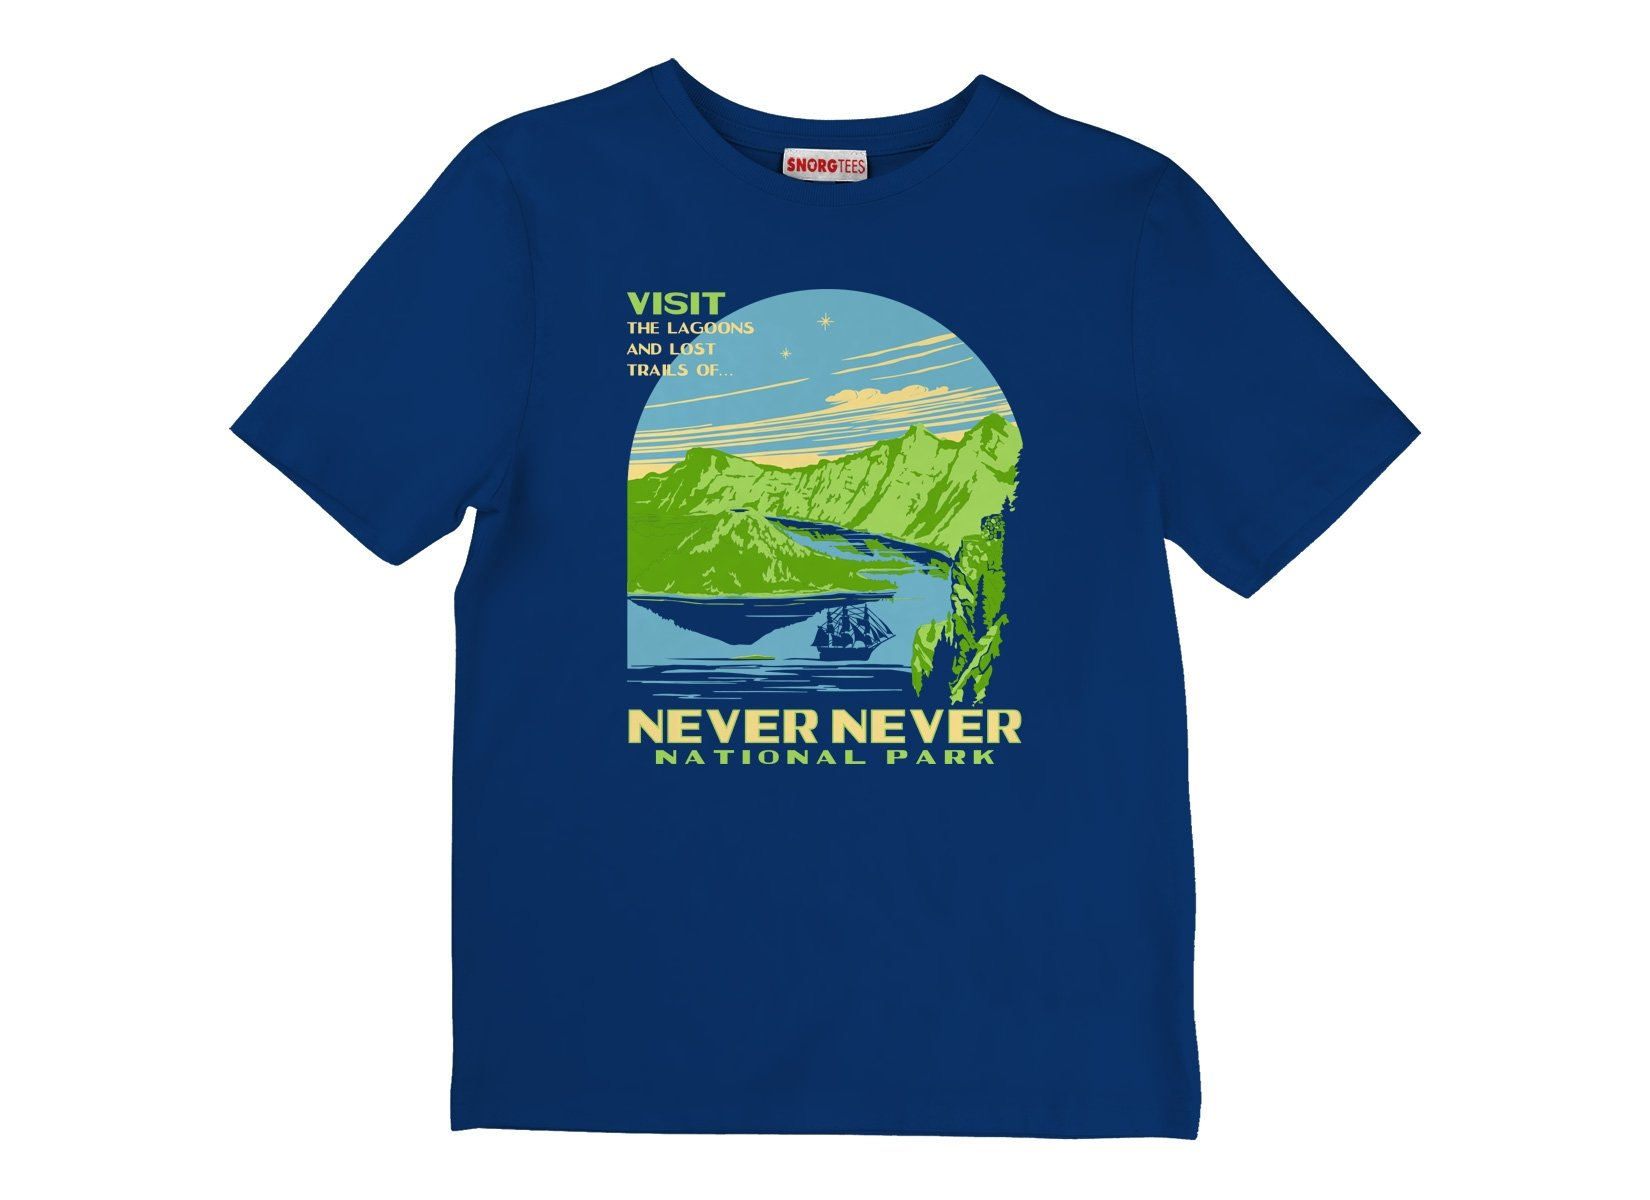 Never Never National Park on Kids T-Shirt